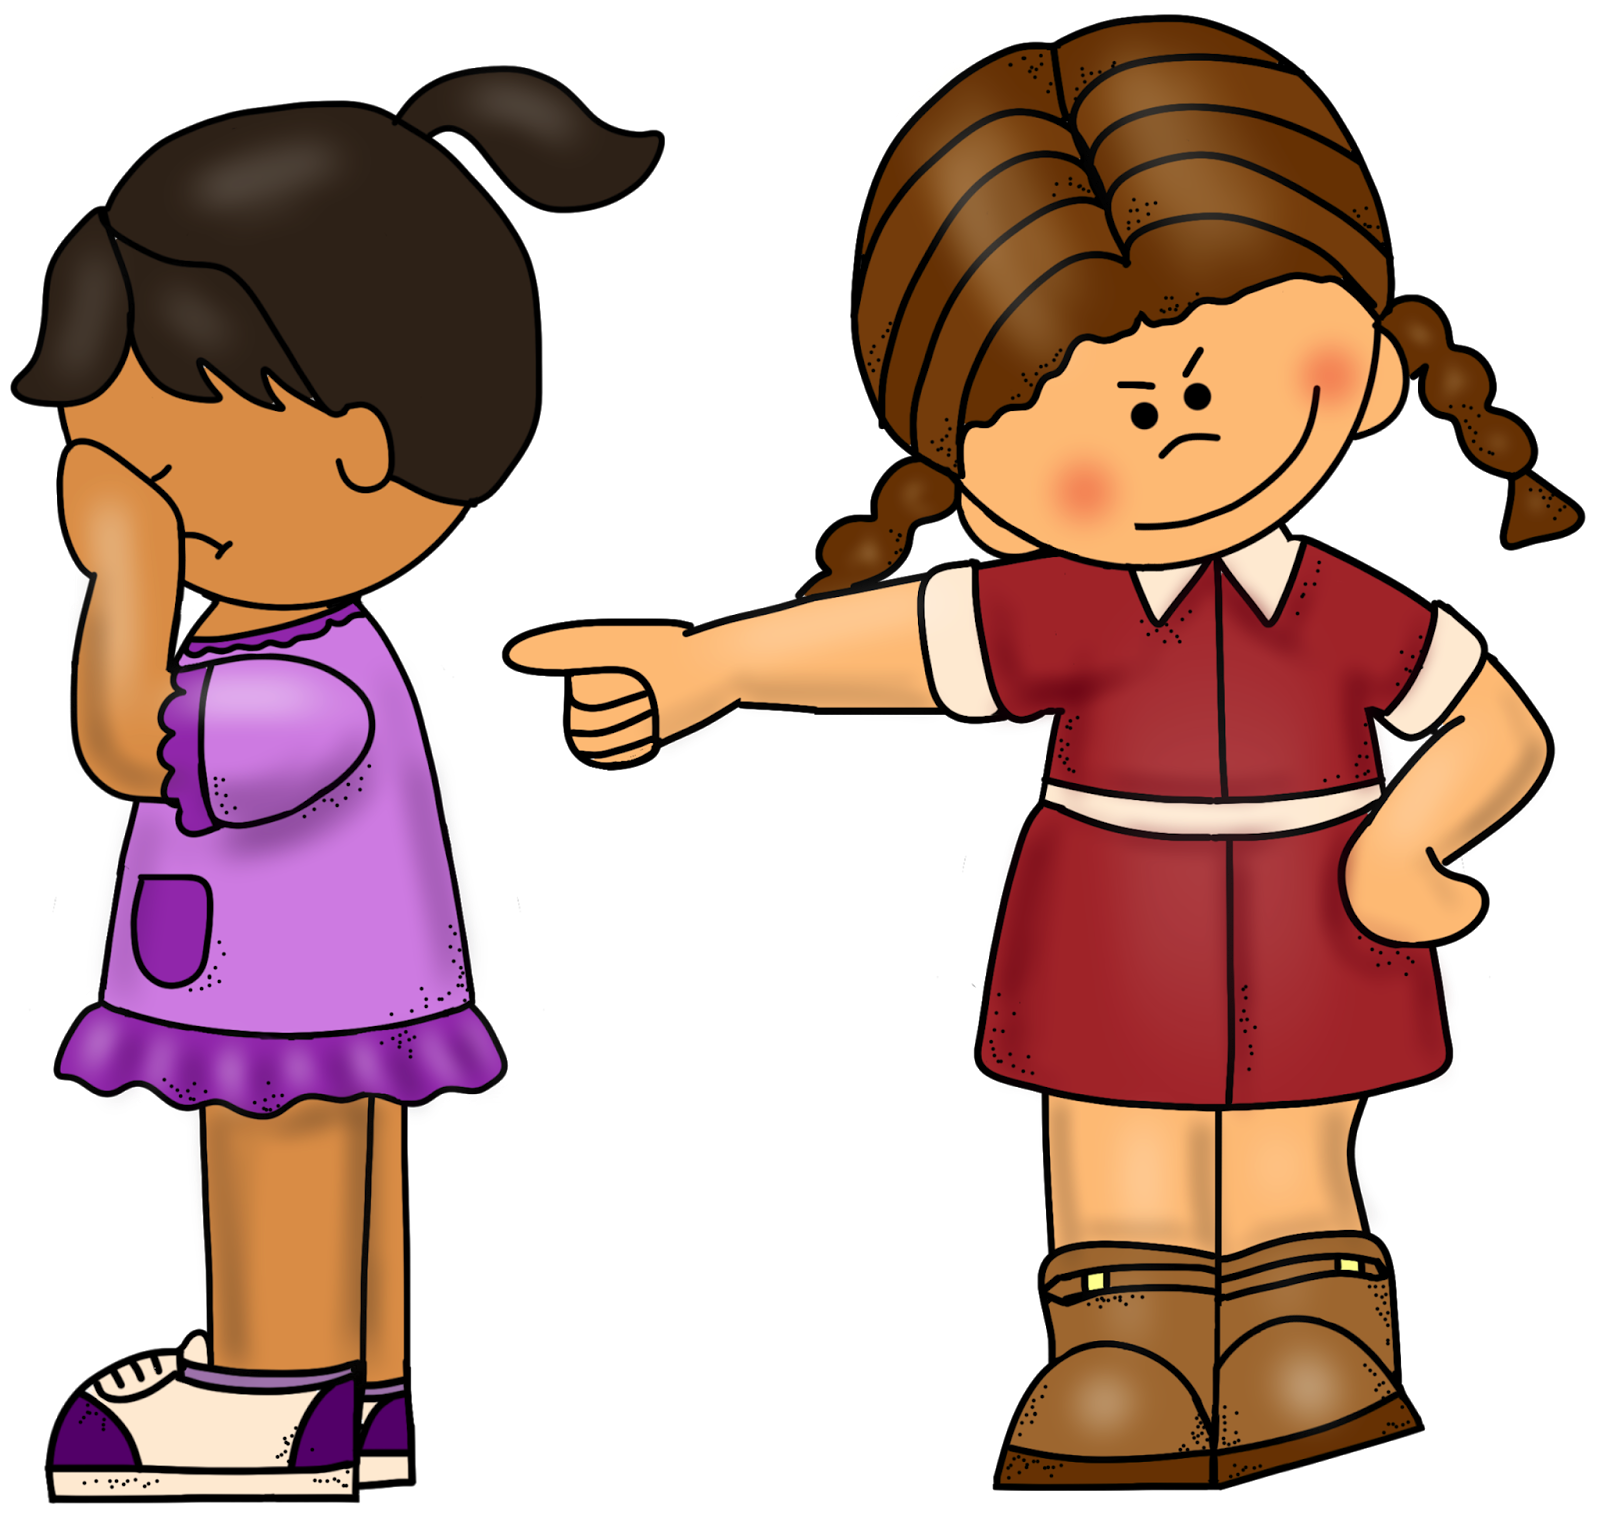 Ramana depression crime of. Student clipart bullying